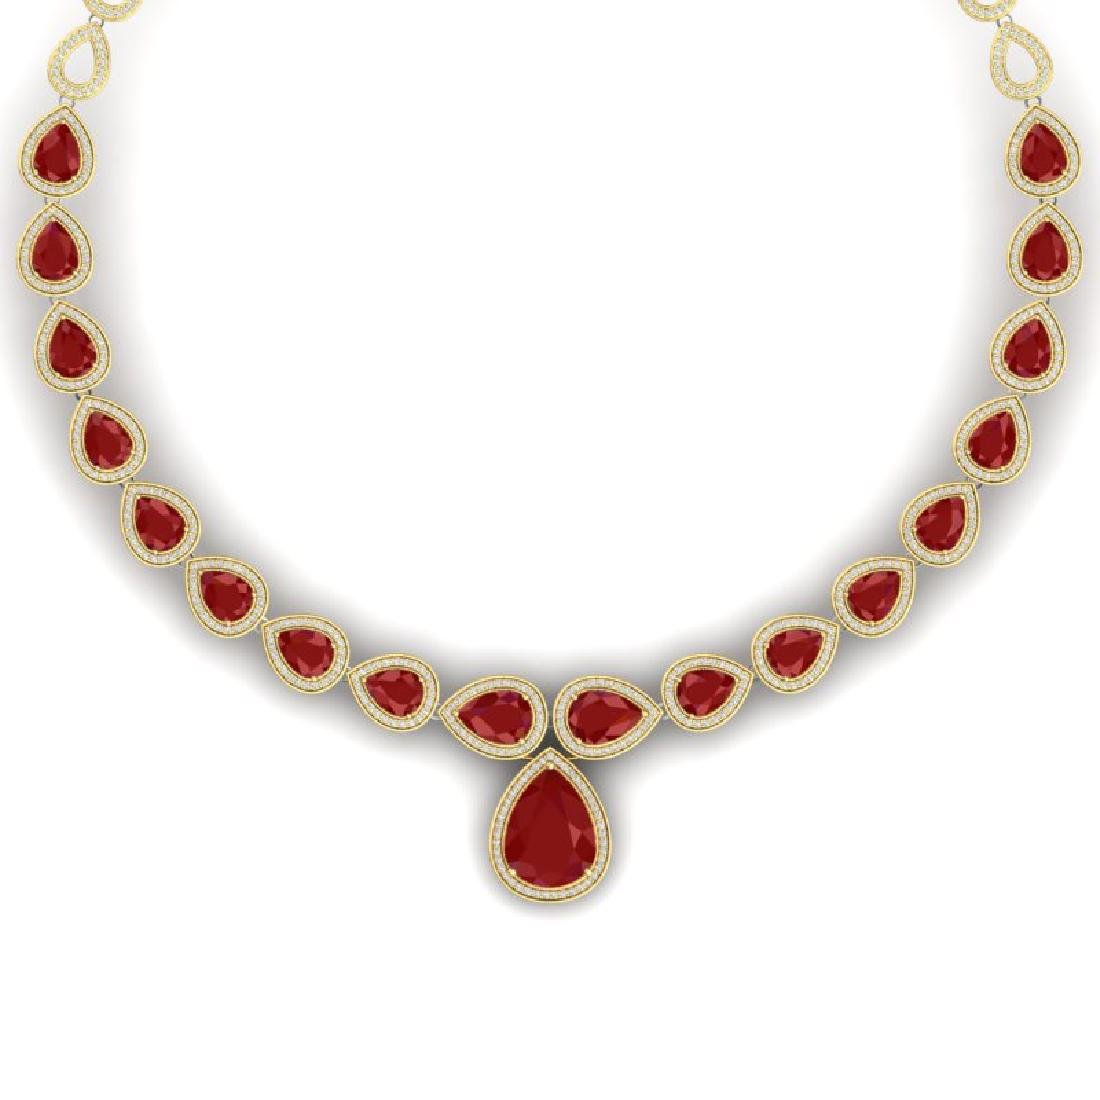 51.41 CTW Royalty Ruby & VS Diamond Necklace 18K Yellow